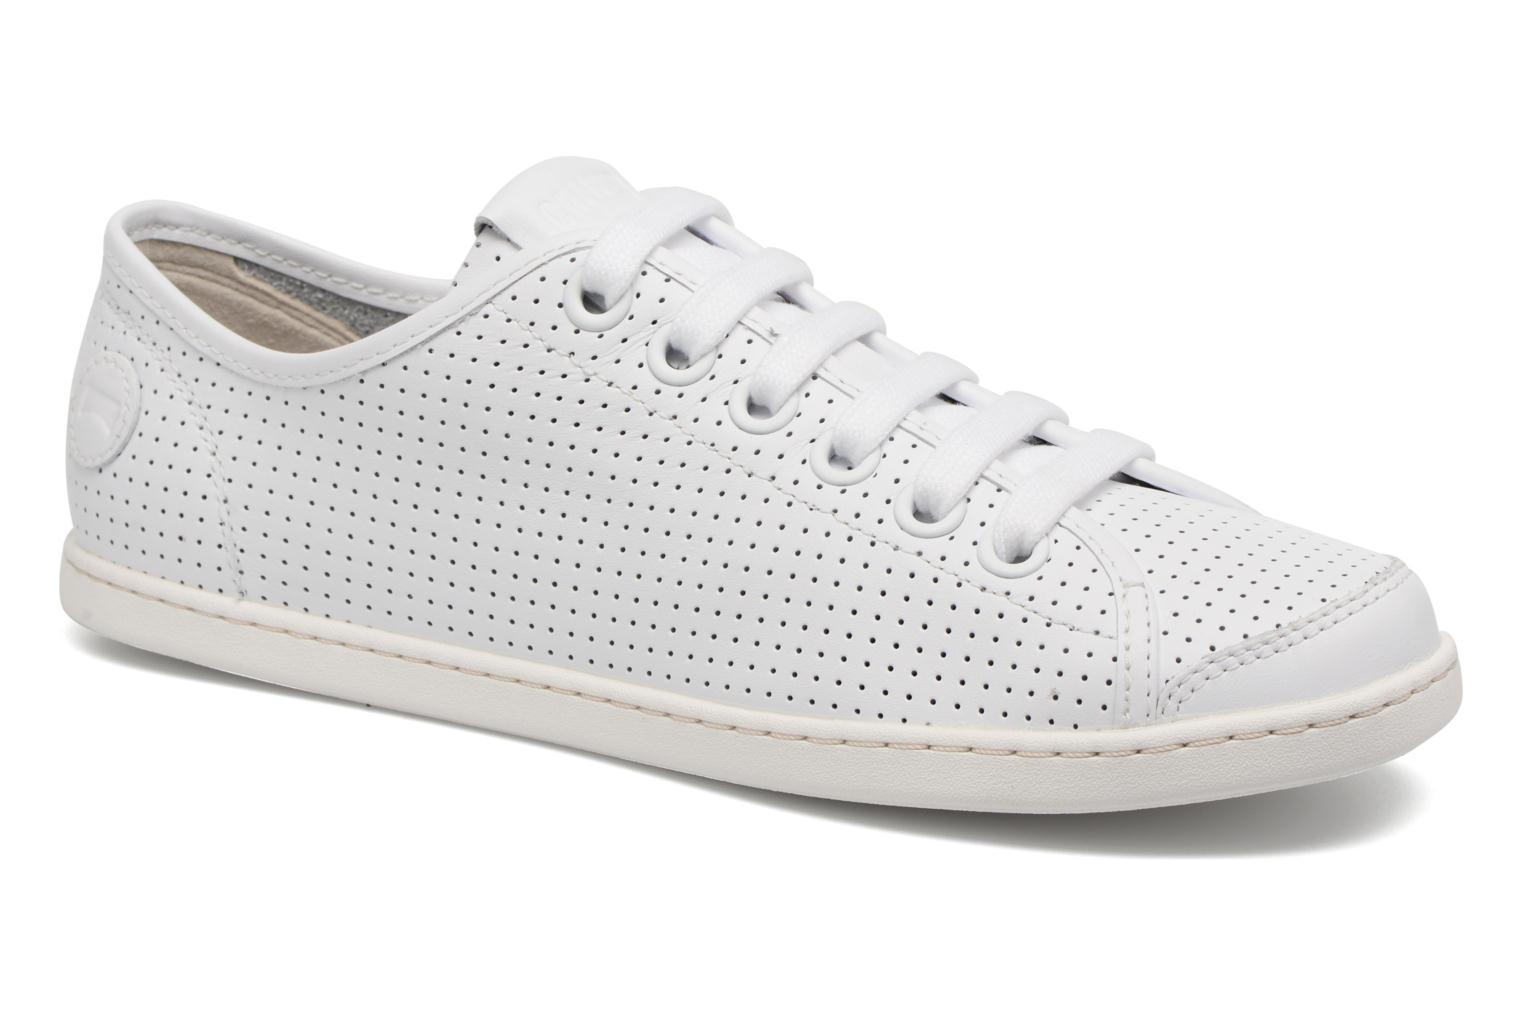 Marques Chaussure homme Camper homme UNO White Natural